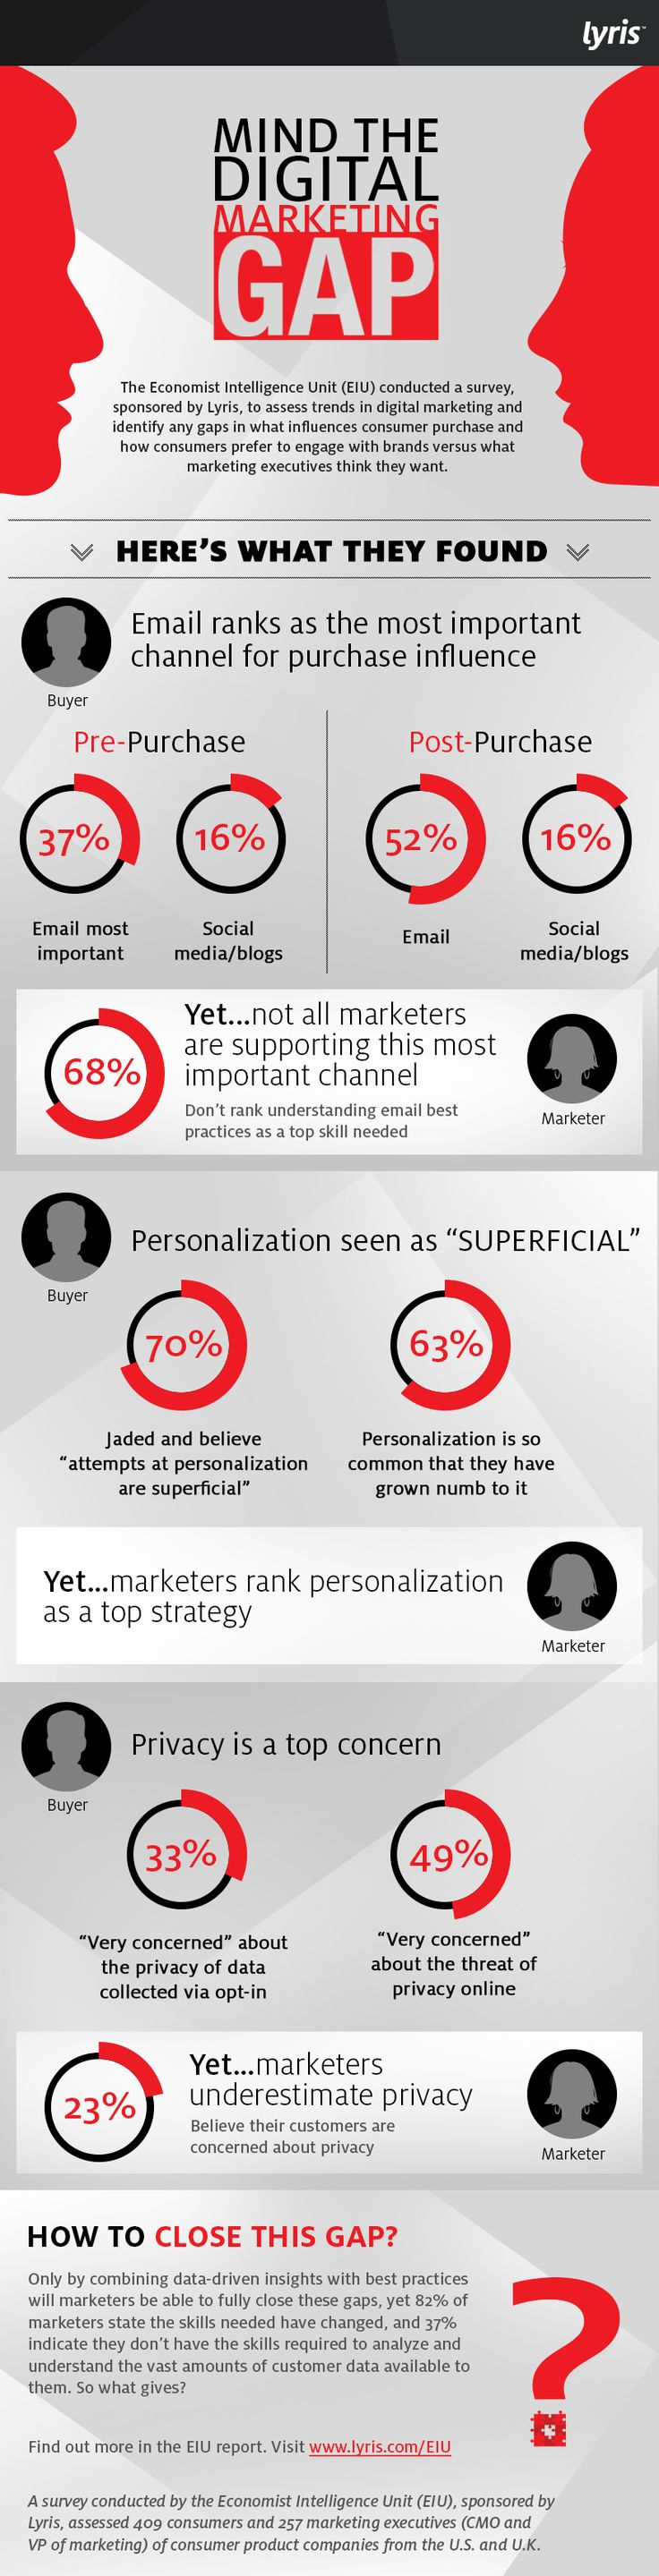 Mind the Digital Marketing Gap #email #personalization #privacy